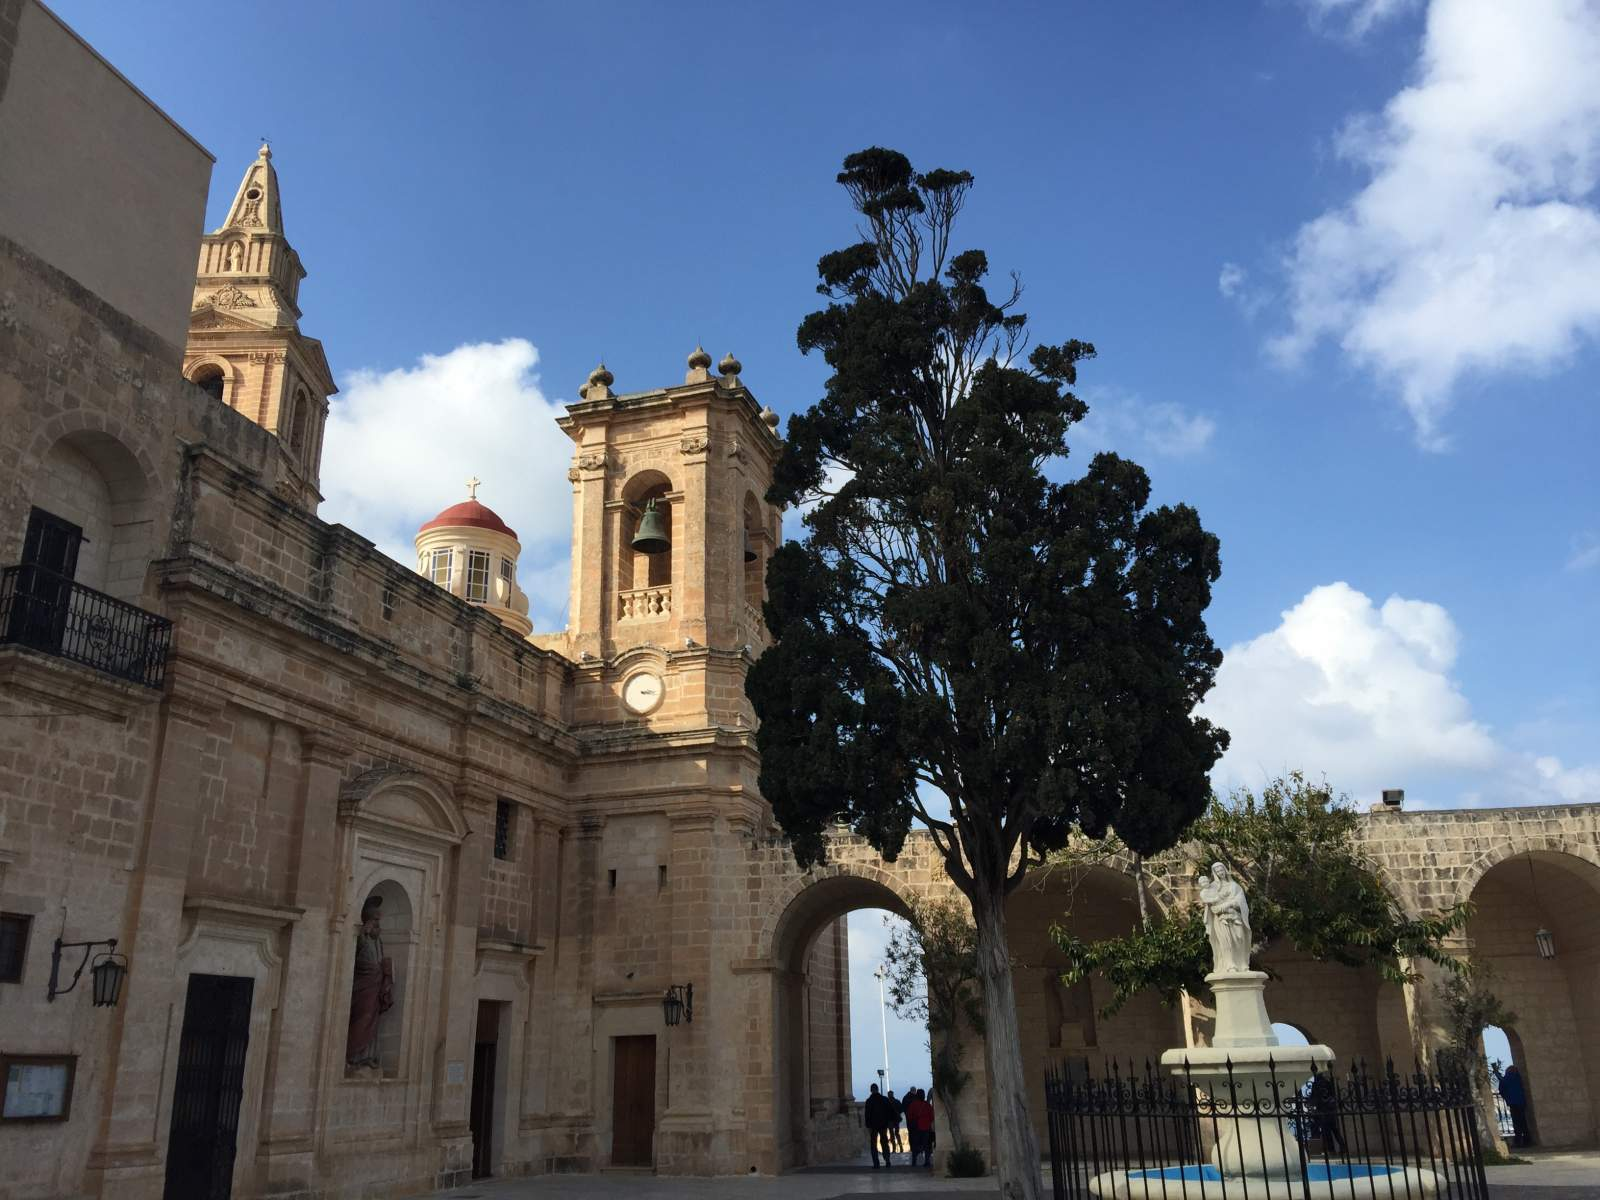 parish church mellieha malta external down hill